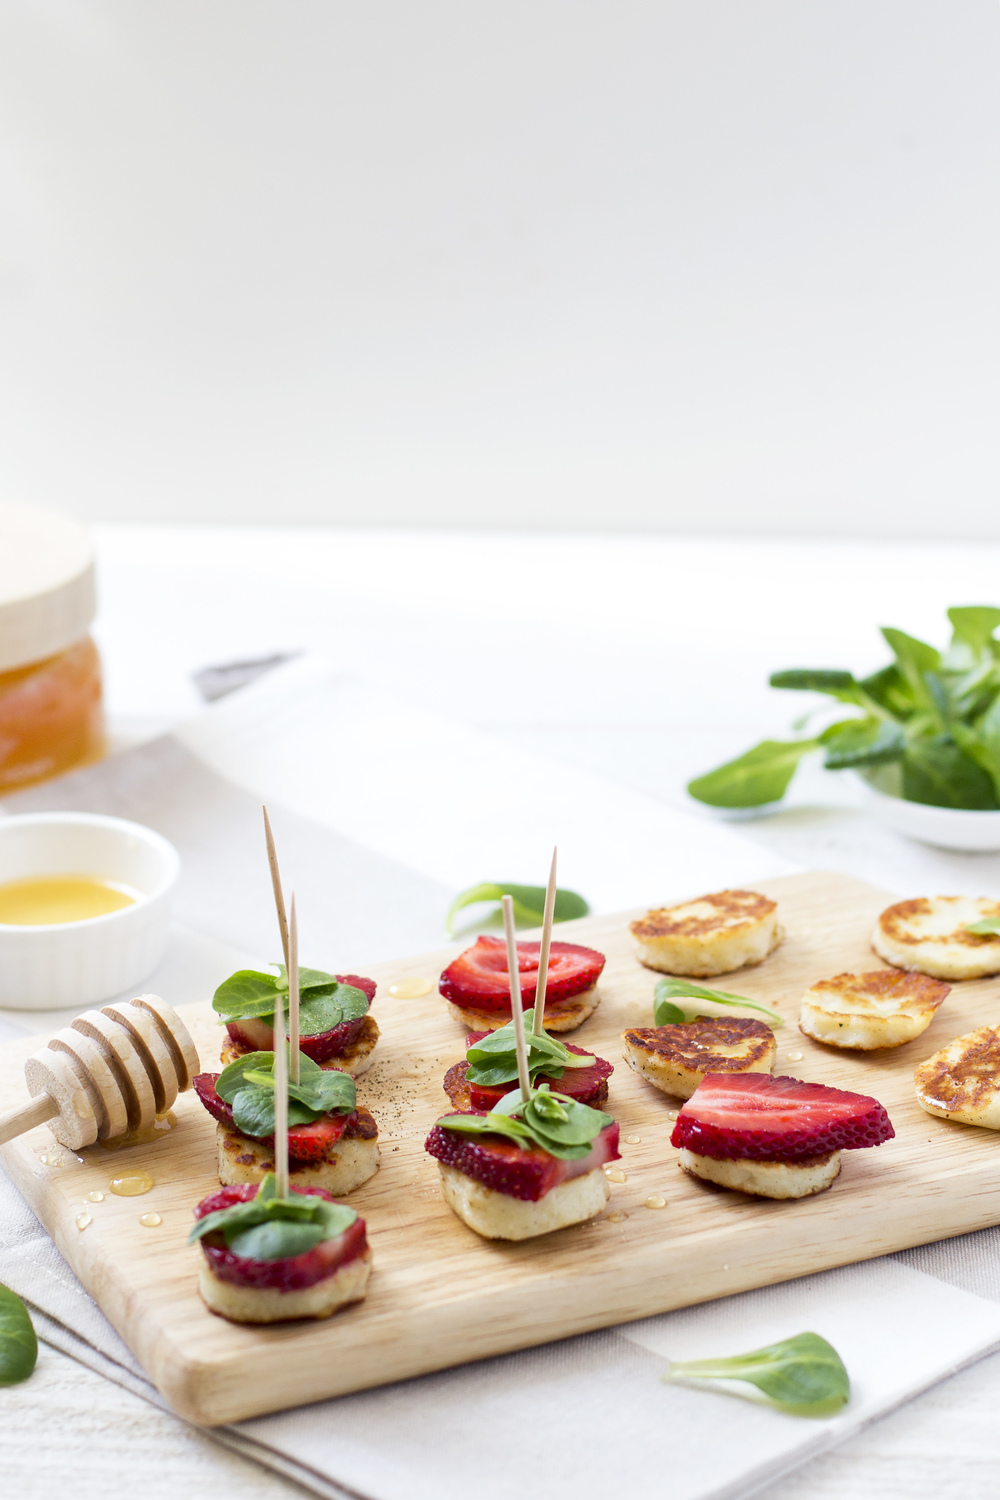 Nordic Honey_Baked Halloumi with honey and strawberries_3.jpg